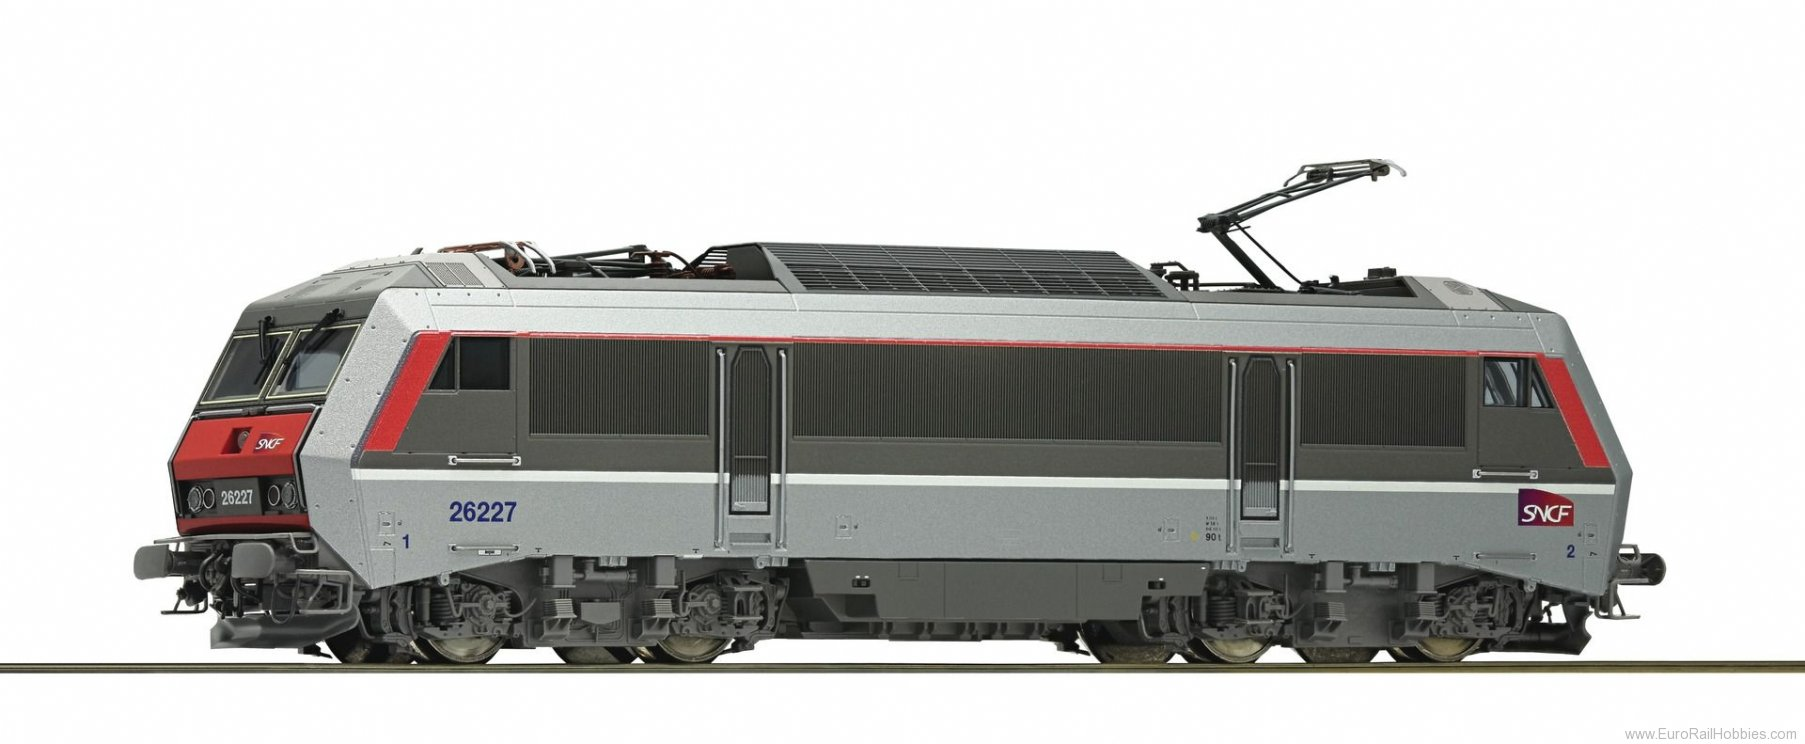 Roco 73860 SNCF BB 26000 Electric Locomotive (Digital So